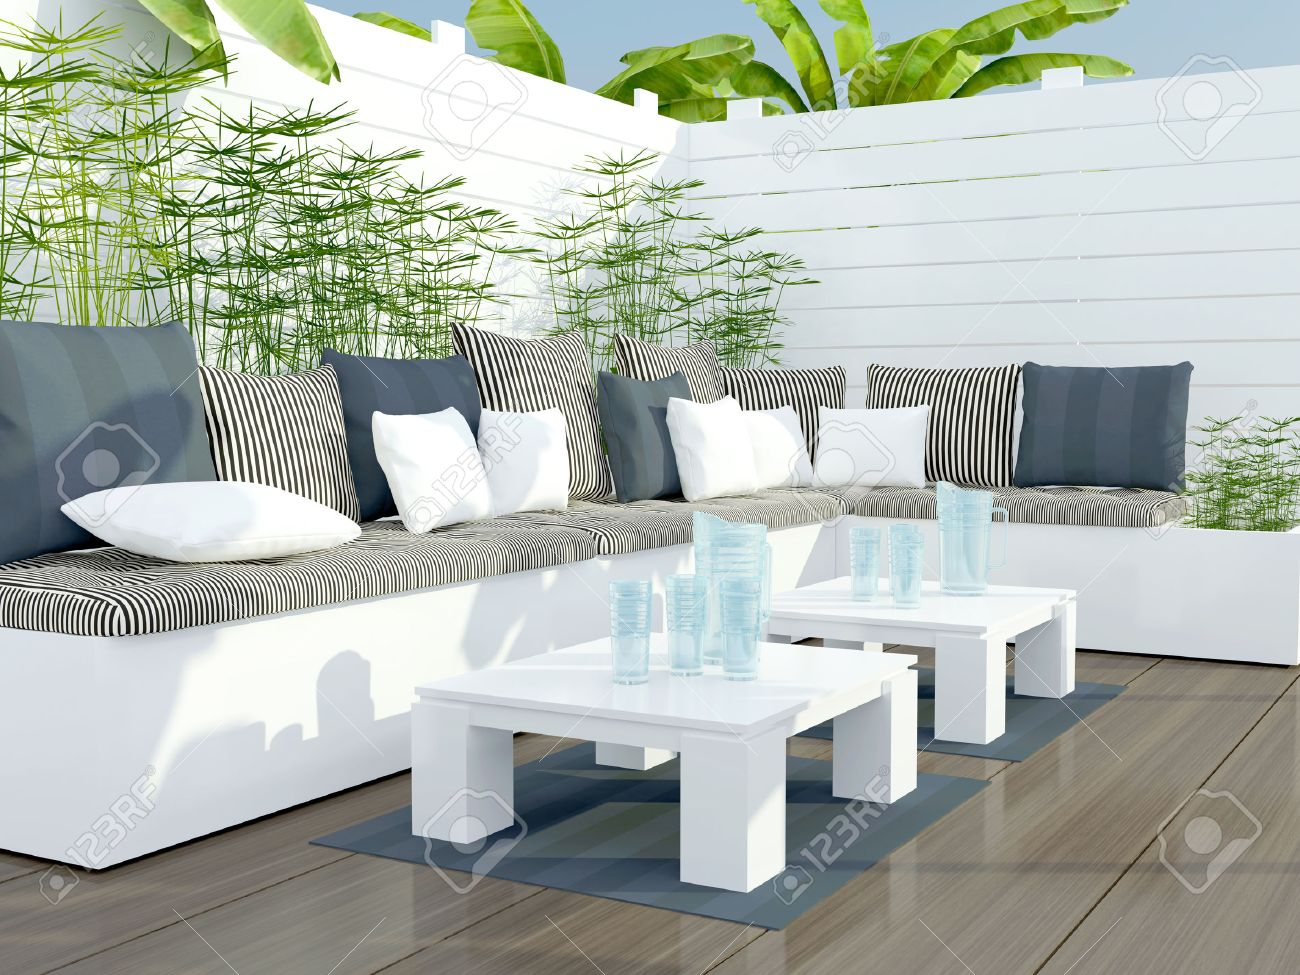 garden furniture outdoor patio seating area with big white sofa and table